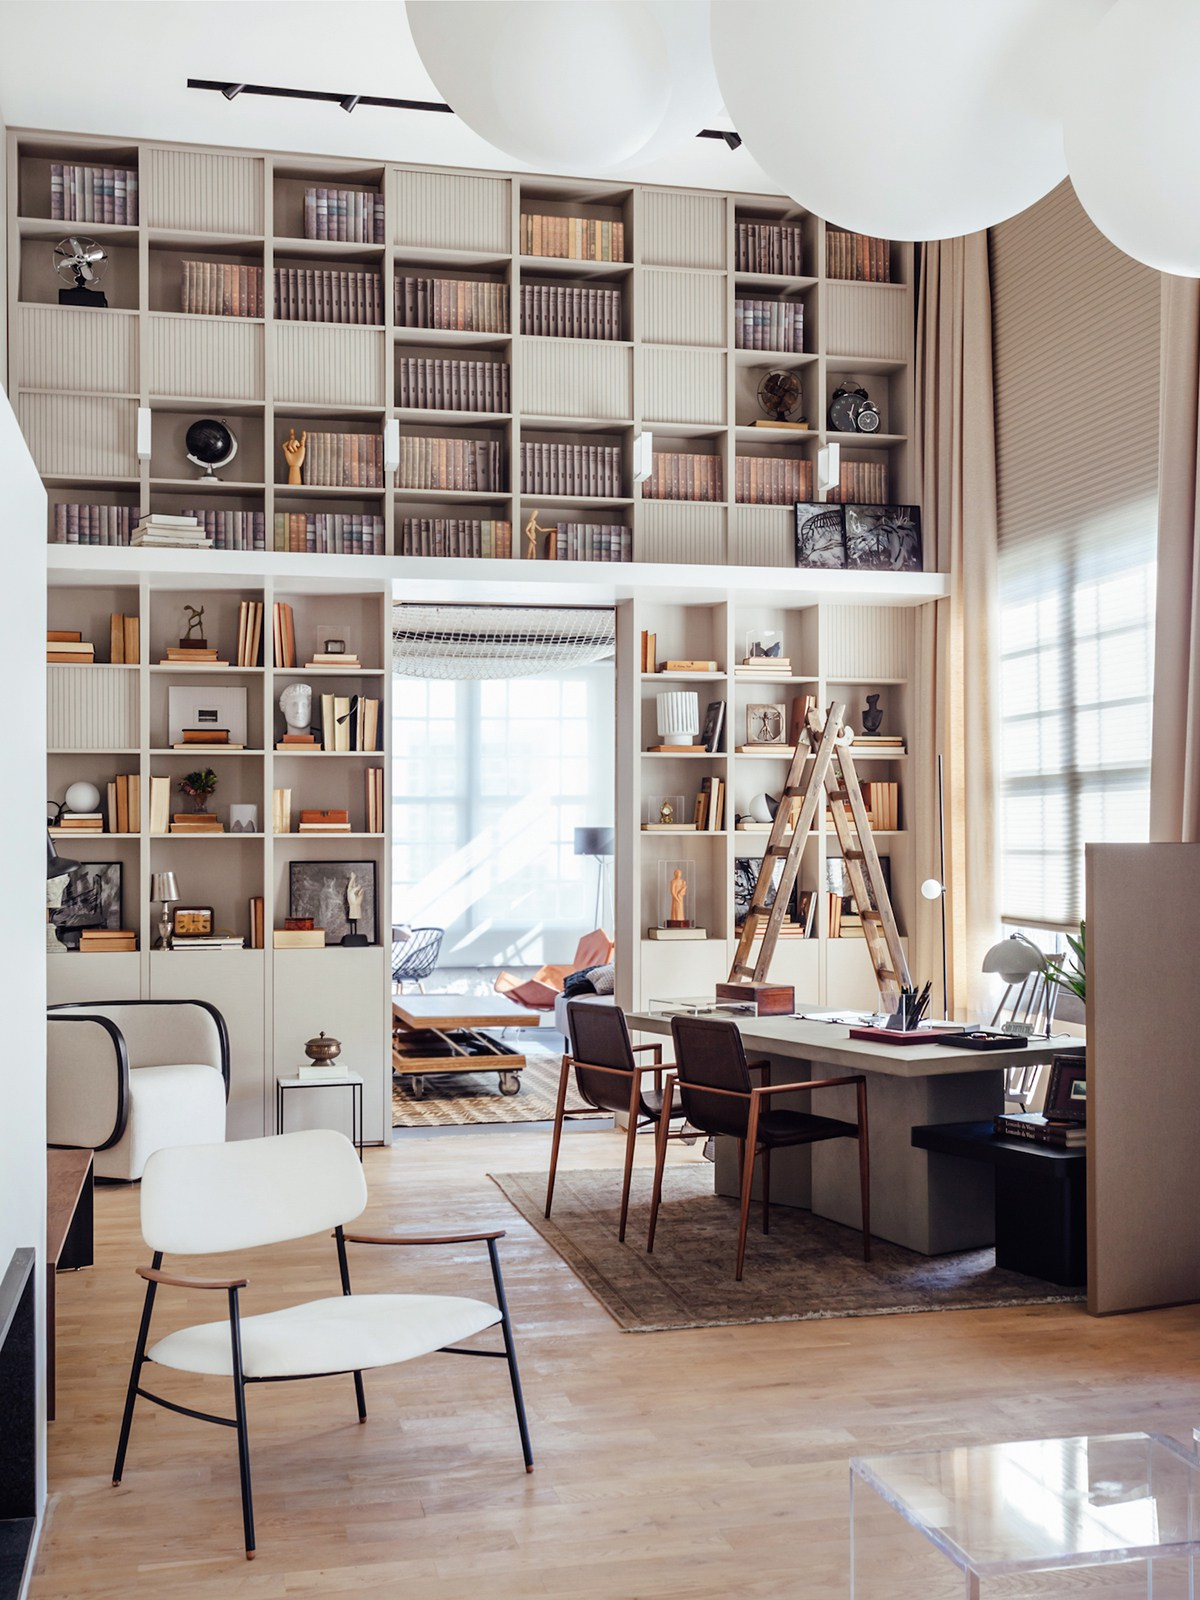 Your Home Office Needs To Be Freshed Up, Here You Have Some Tips home office Your Home Office Needs To Be Freshed Up, Here You Have Some Tips Your Home Office Needs To Be Freshed Up Here You Have Some Tips